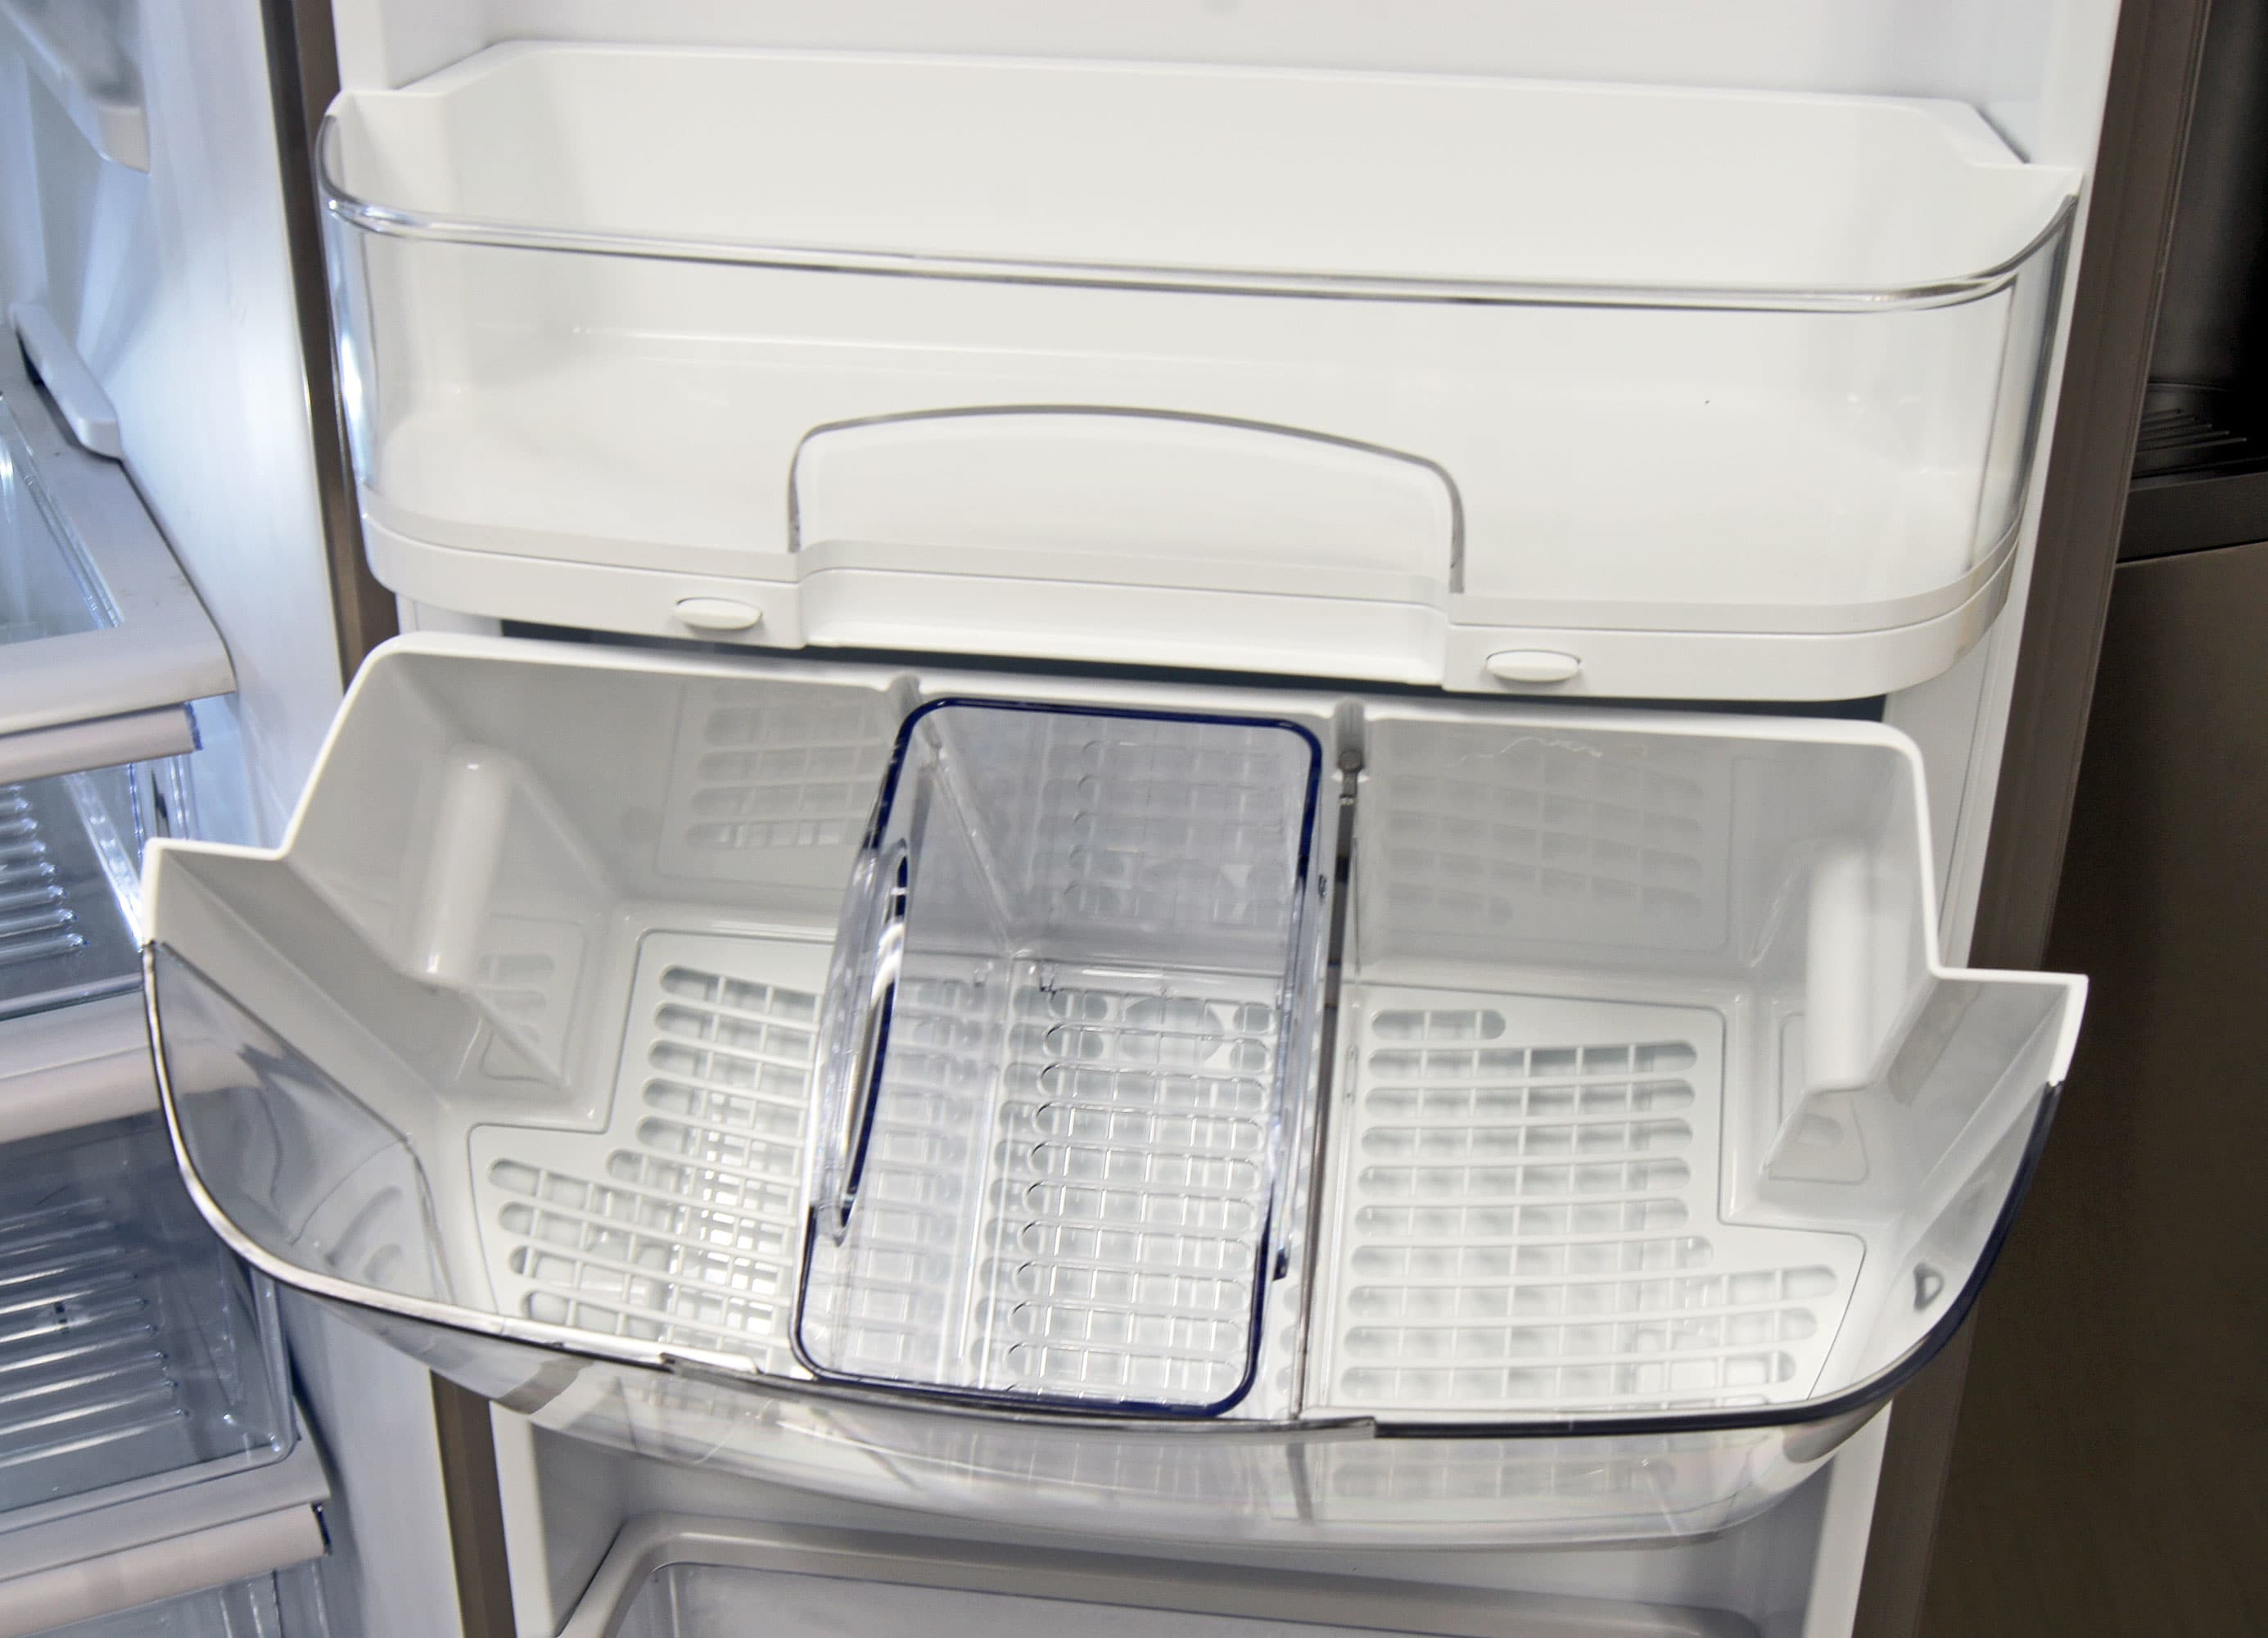 The KitchenAid KSF22C4CYY's special door compartment flips forward for easy access.